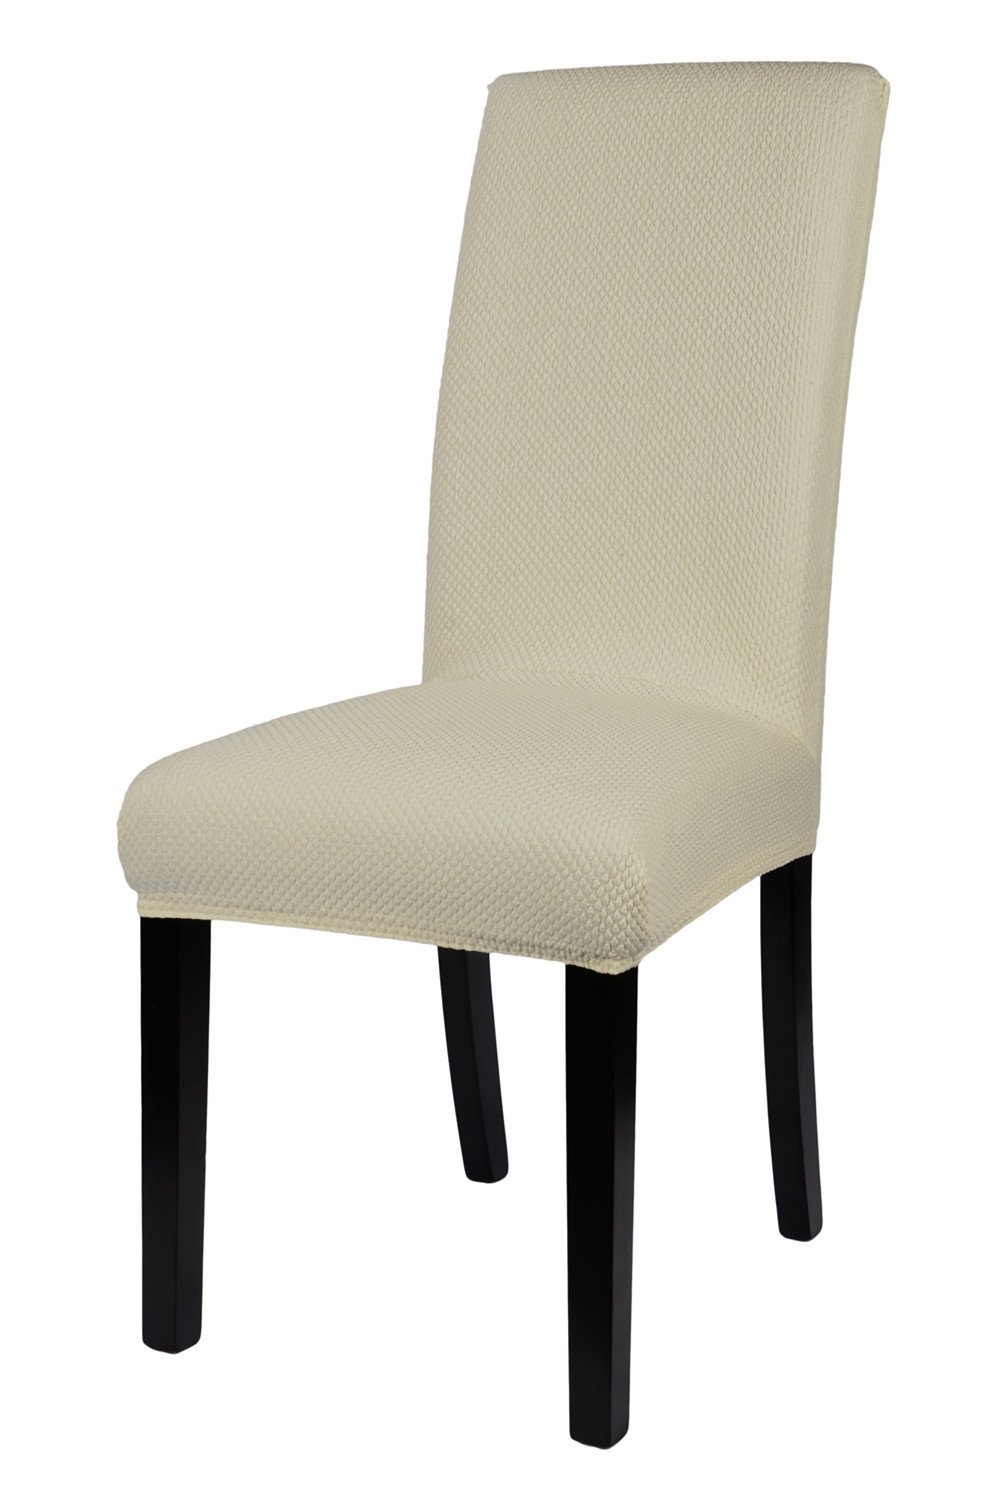 Homluxe Universal Spandex Stretch Dining Room Chair Slipcovers (2, White)